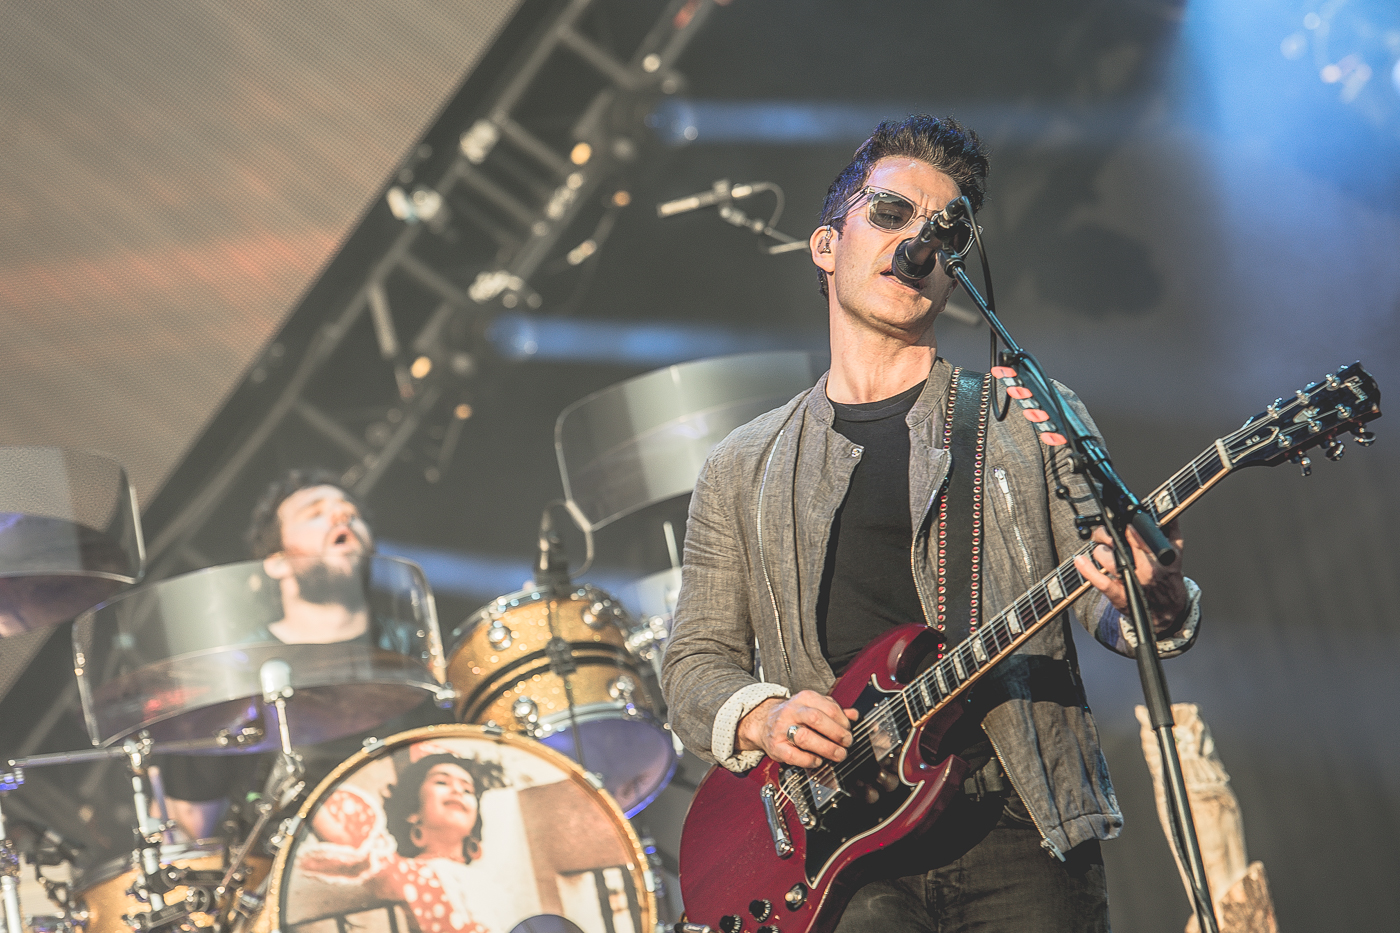 The Stereophonics at Swansea, 13th July 2019